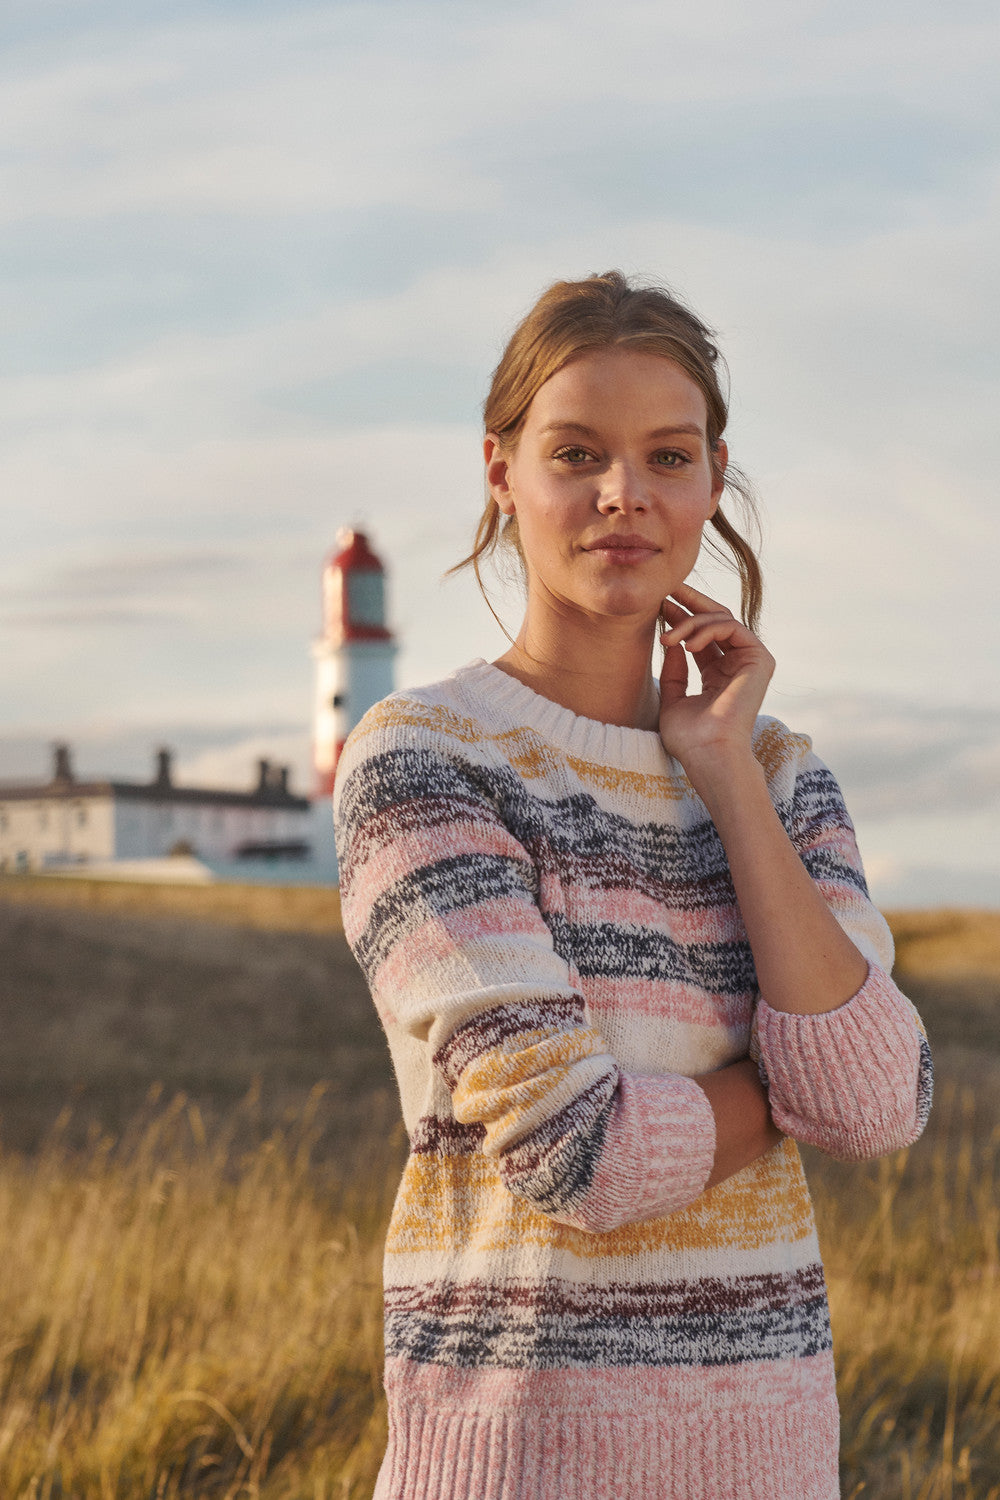 Barbour Auklet Knit Jumper for Ladies in Multi